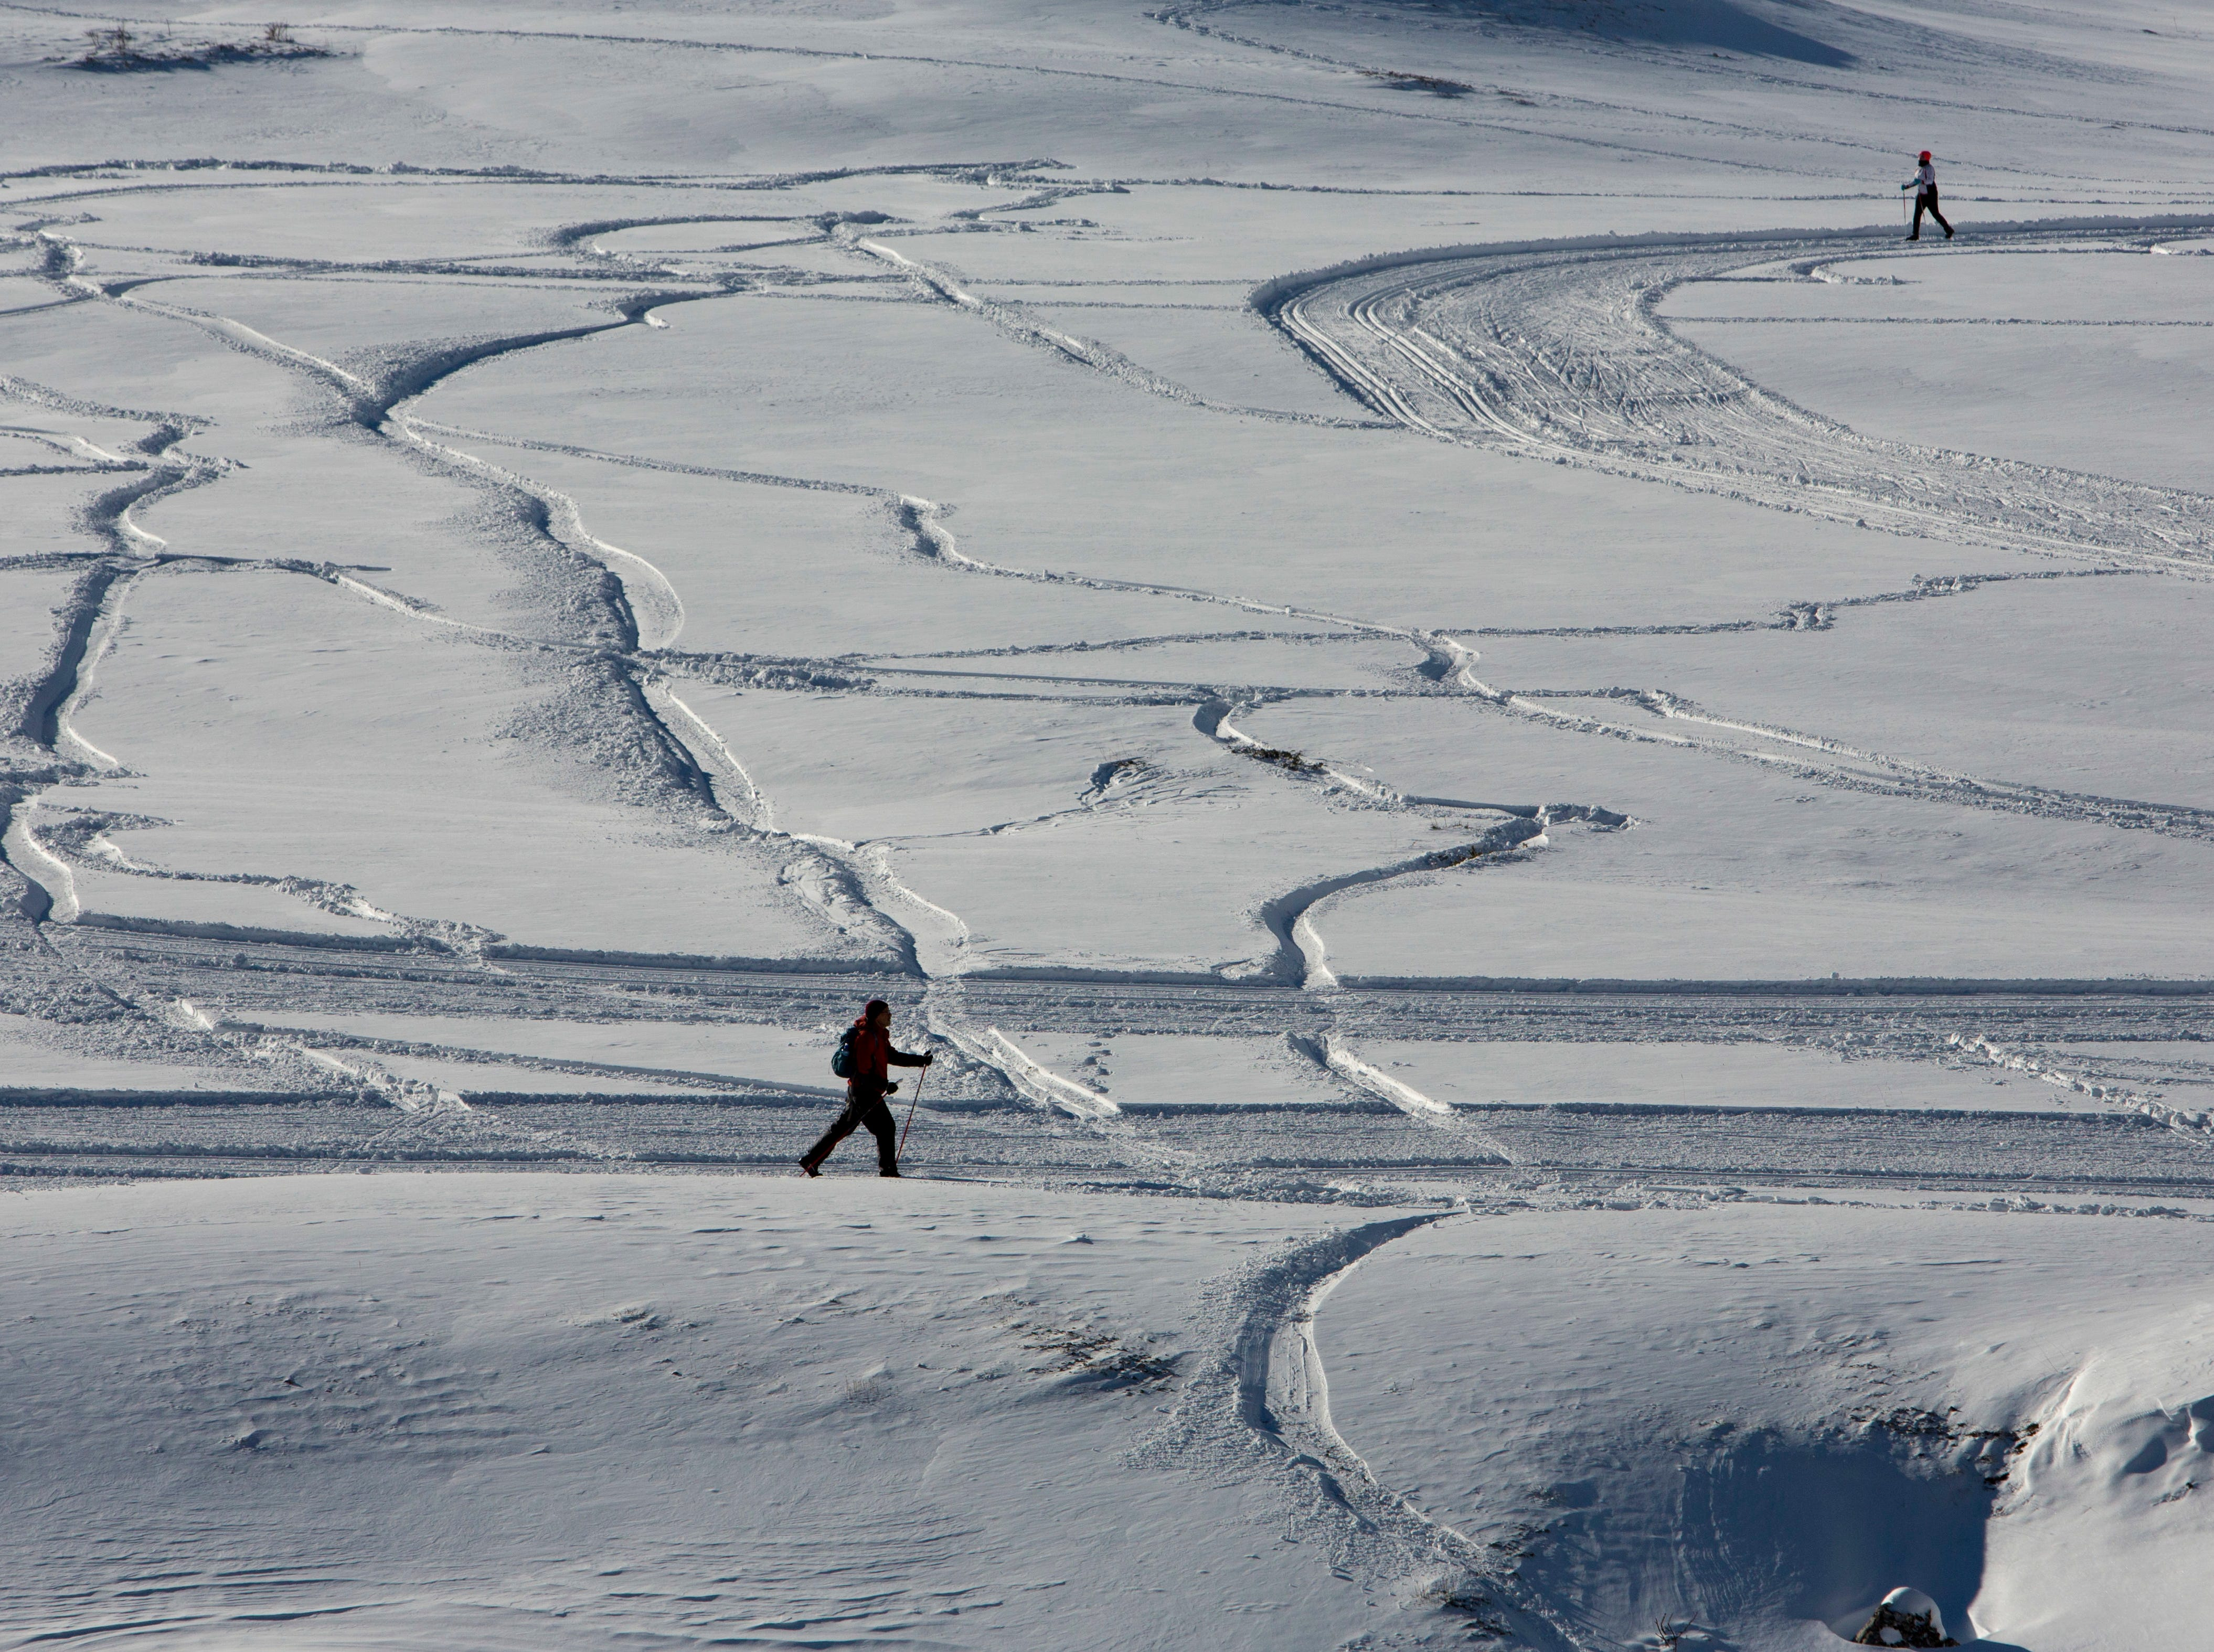 People cross-country ski in Piani di Pezza, near Rocca di Mezzo, Italy, in the Abruzzo region, after a heavy snowstorm, Saturday, Jan. 5, 2019.